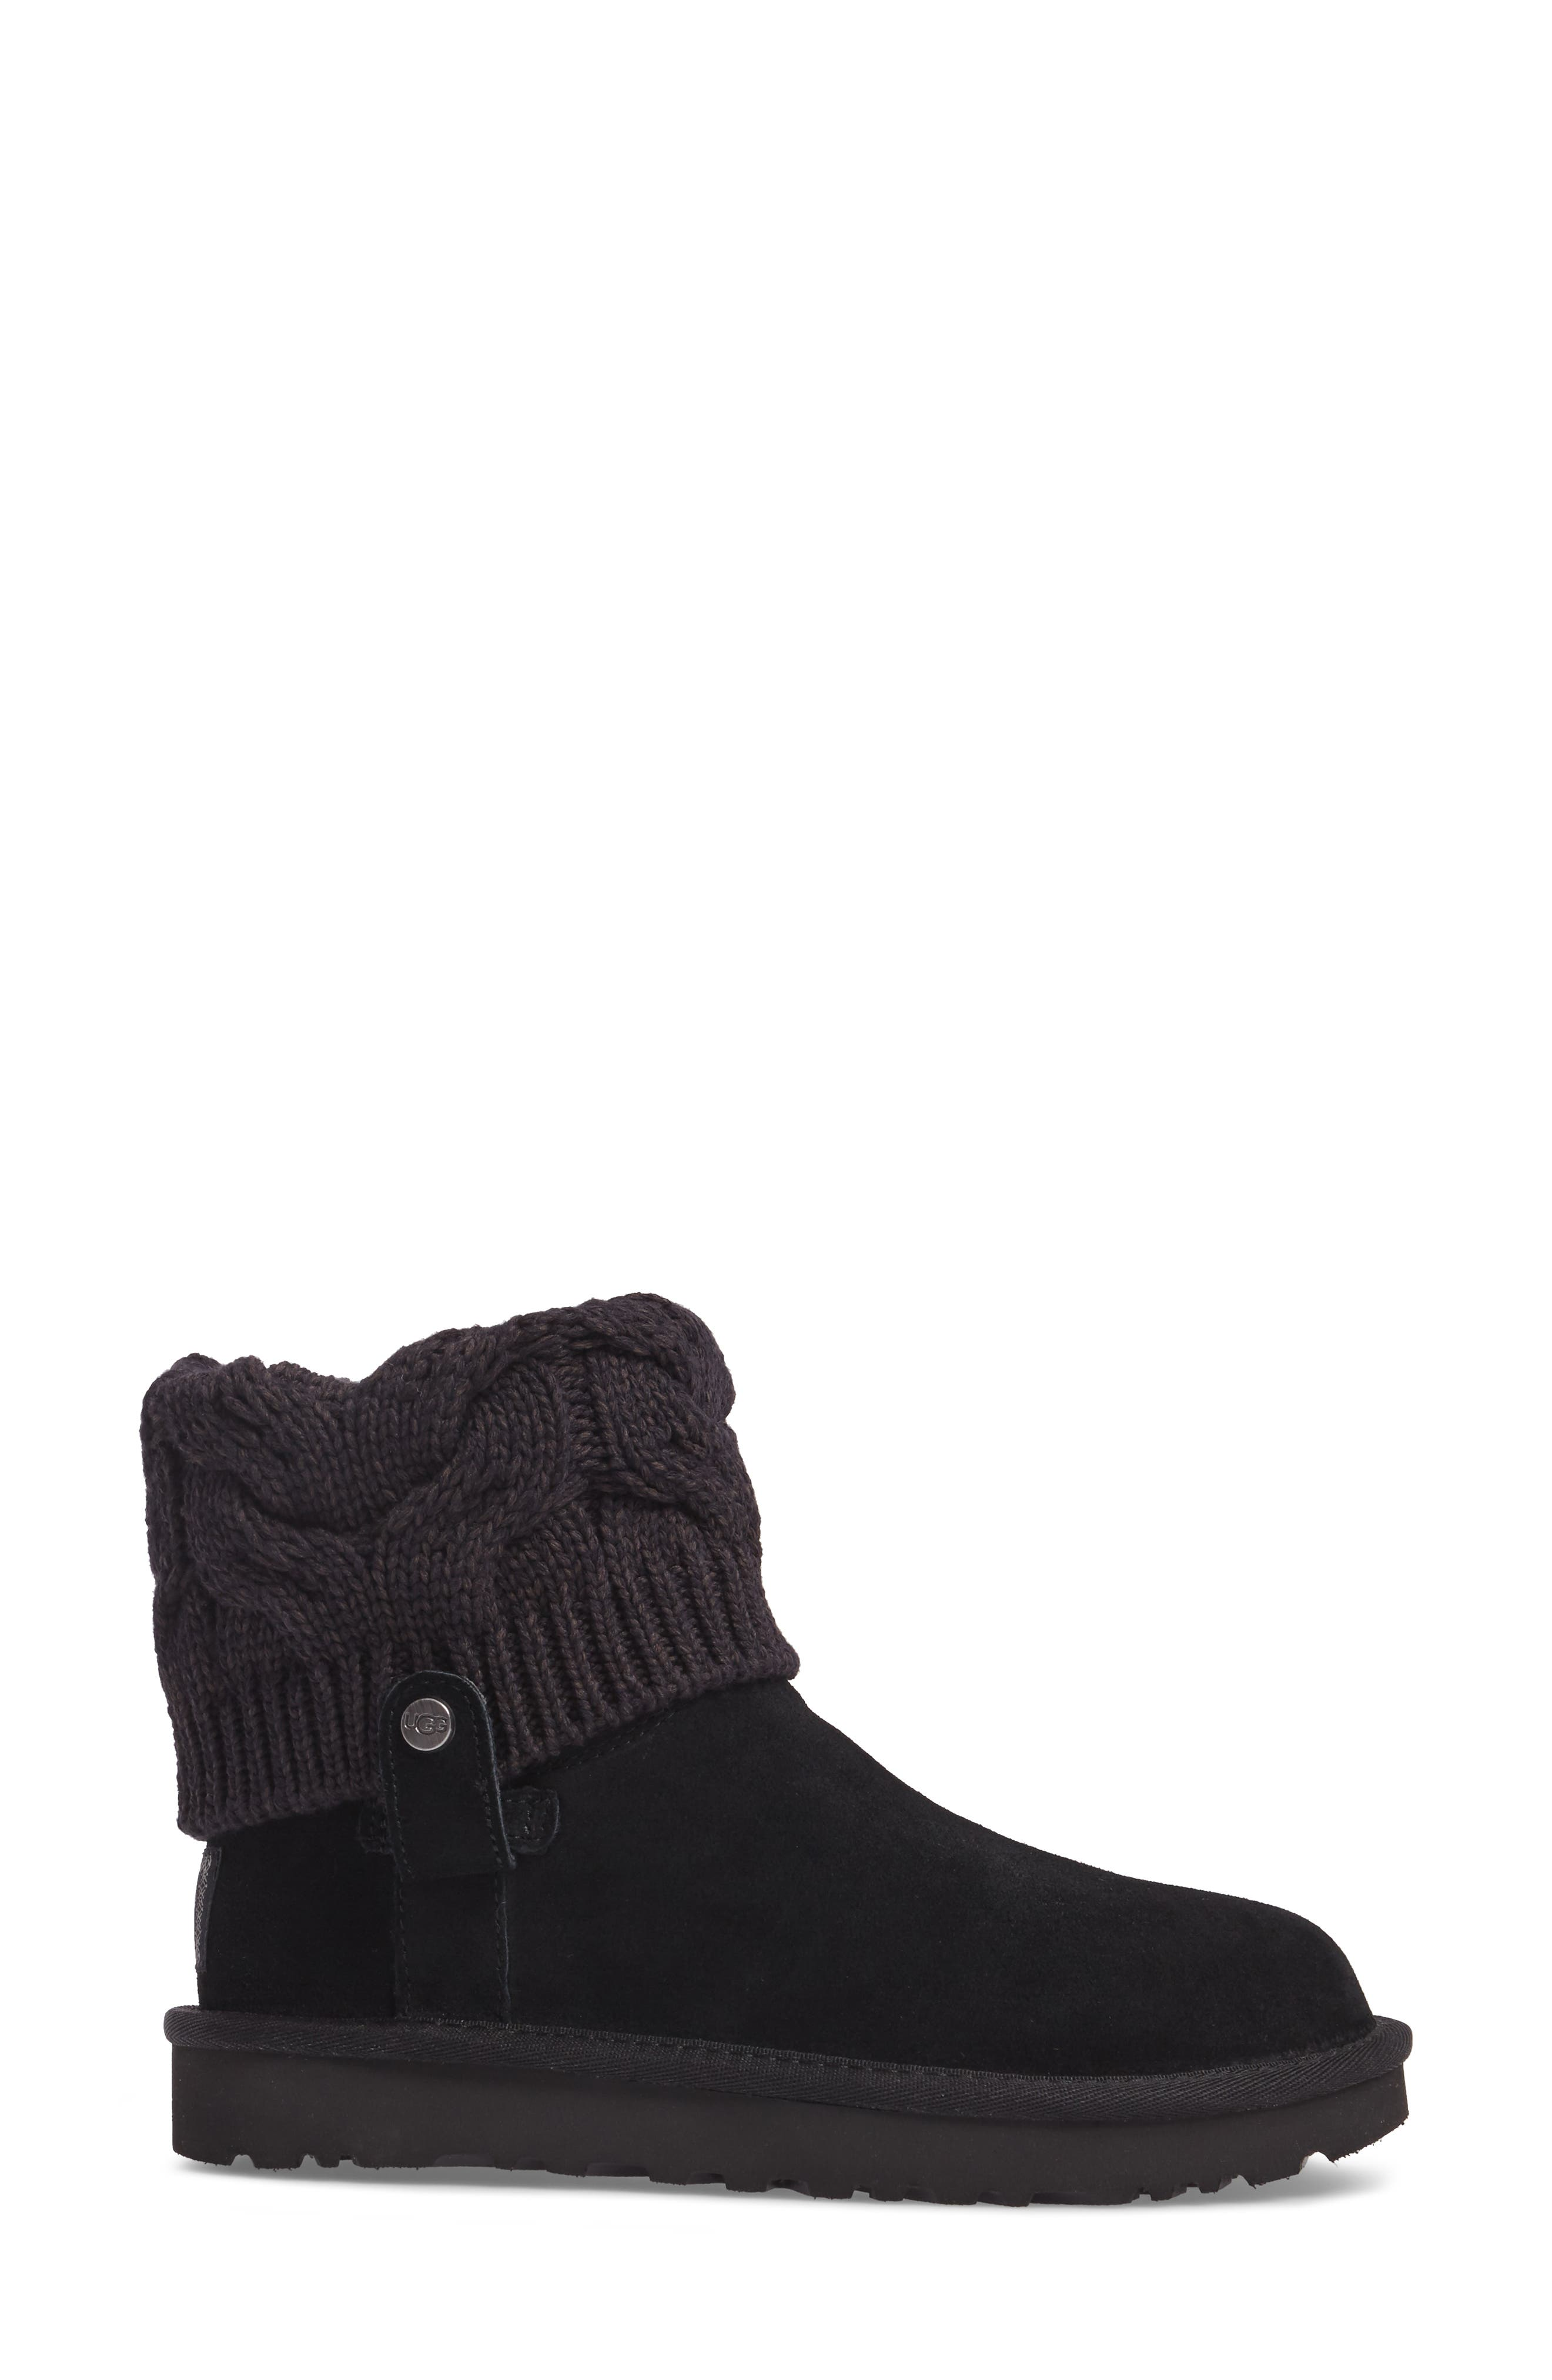 Saela Knit Cuff Boot,                             Alternate thumbnail 3, color,                             001